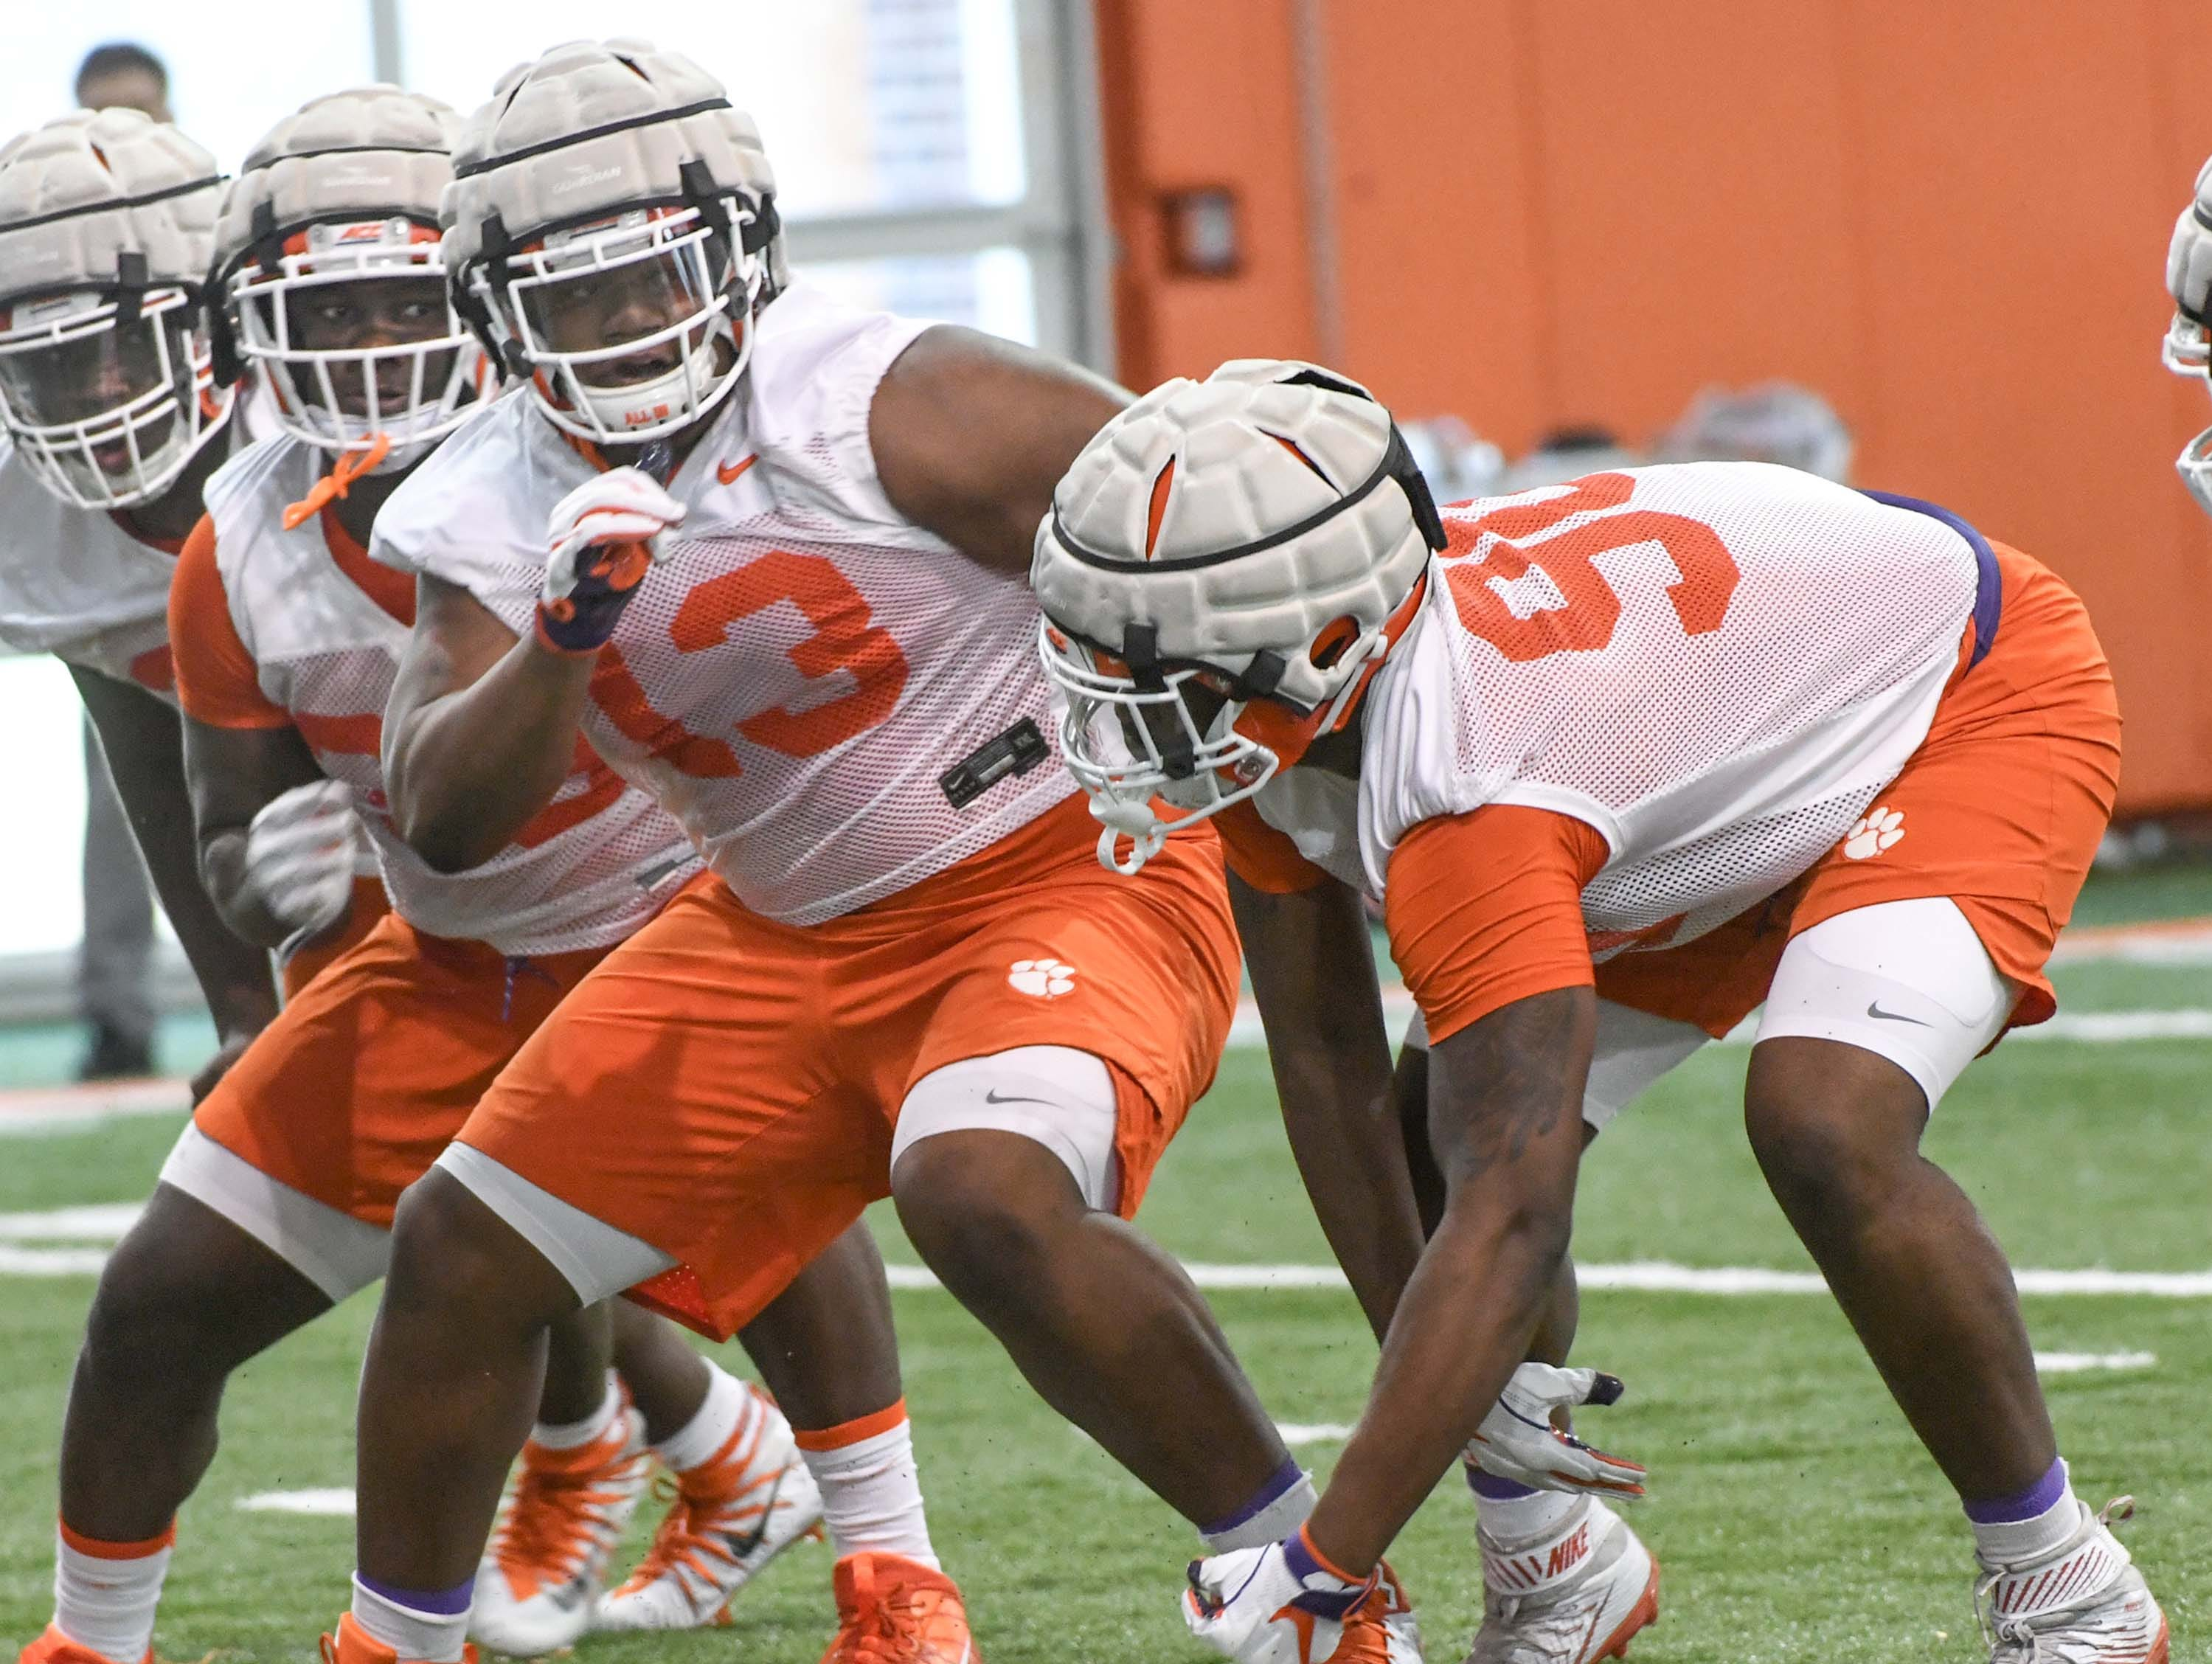 Clemson defensive lineman Tyler Davis (13) and Clemson defensive tackle Darnell Jefferies (90) during the first practice at the Clemson Indoor Practice Facility in Clemson Wednesday, February 27, 2019.